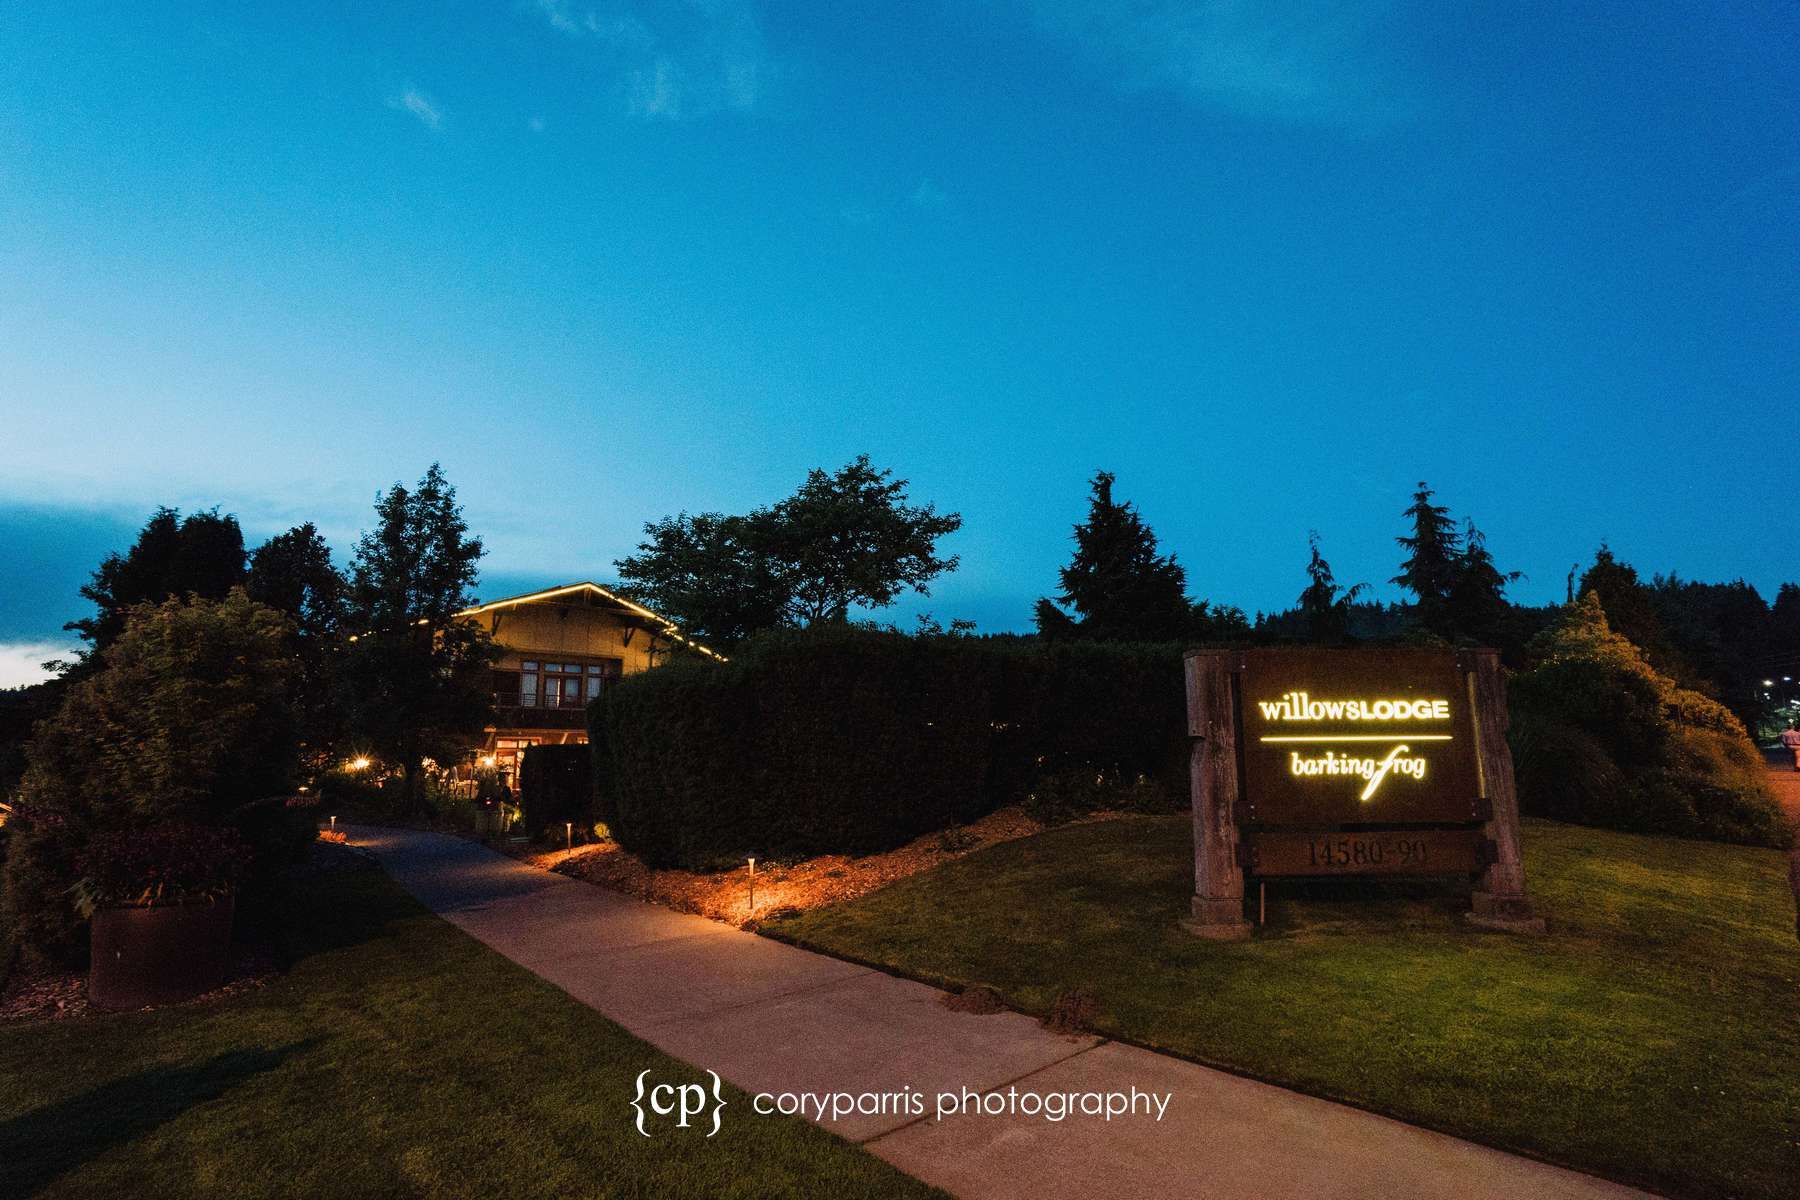 830-Willows-Lodge-Wedding-Photography-Woodinville.jpg